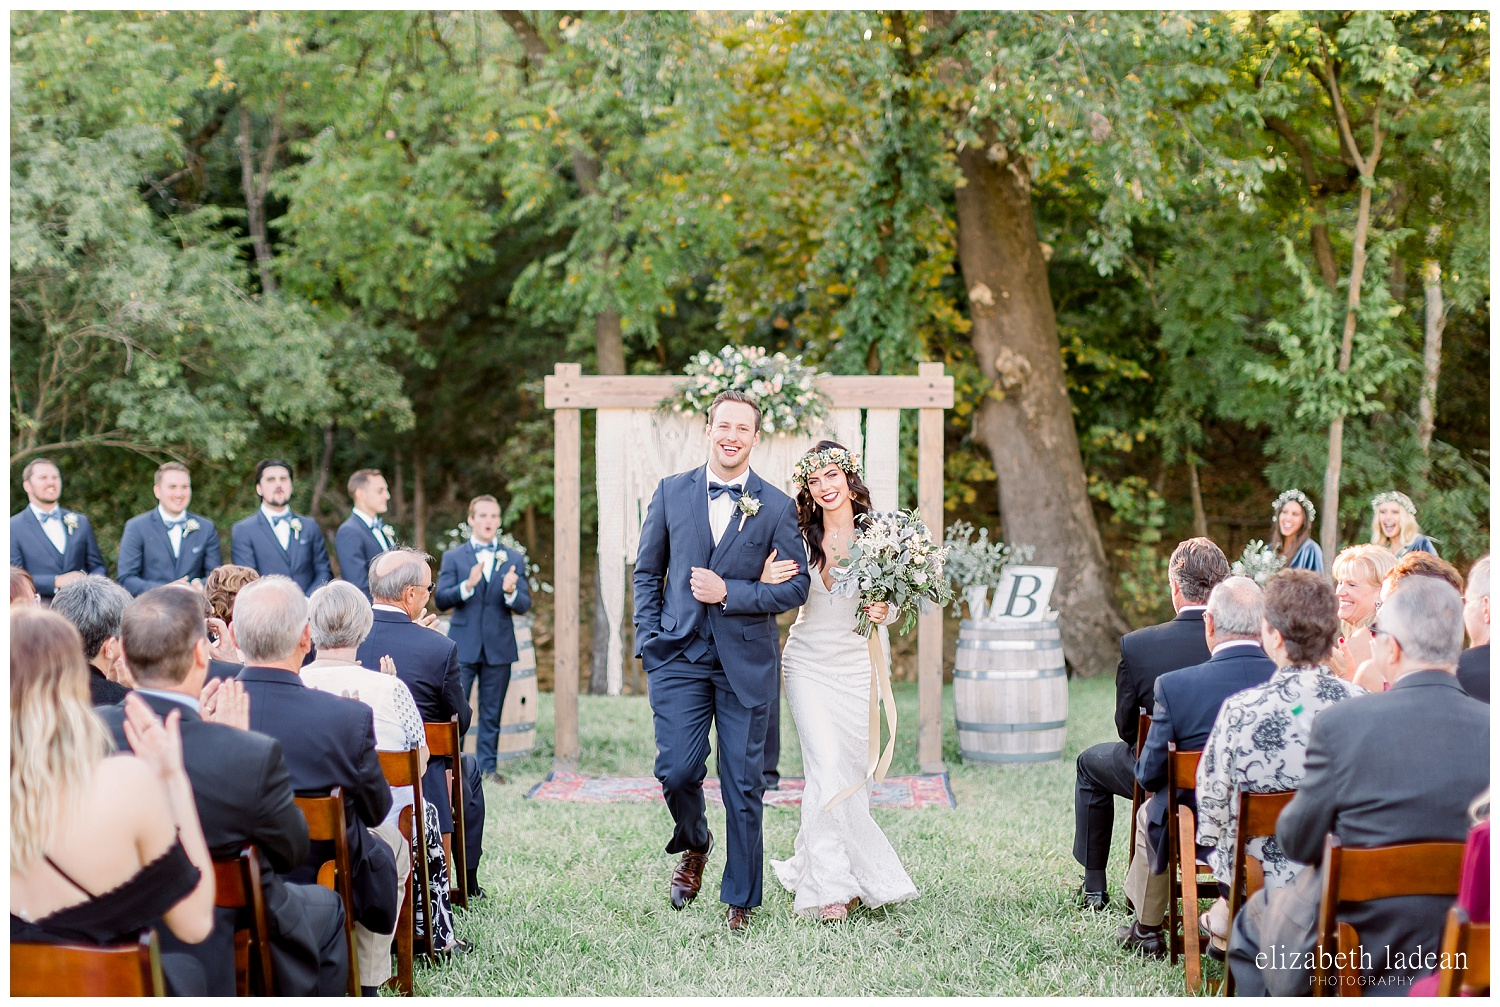 Willow-Creek-Blush-and-Blues-Outdoor-Wedding-Photography-S+Z2018-elizabeth-ladean-photography-photo_0580.jpg